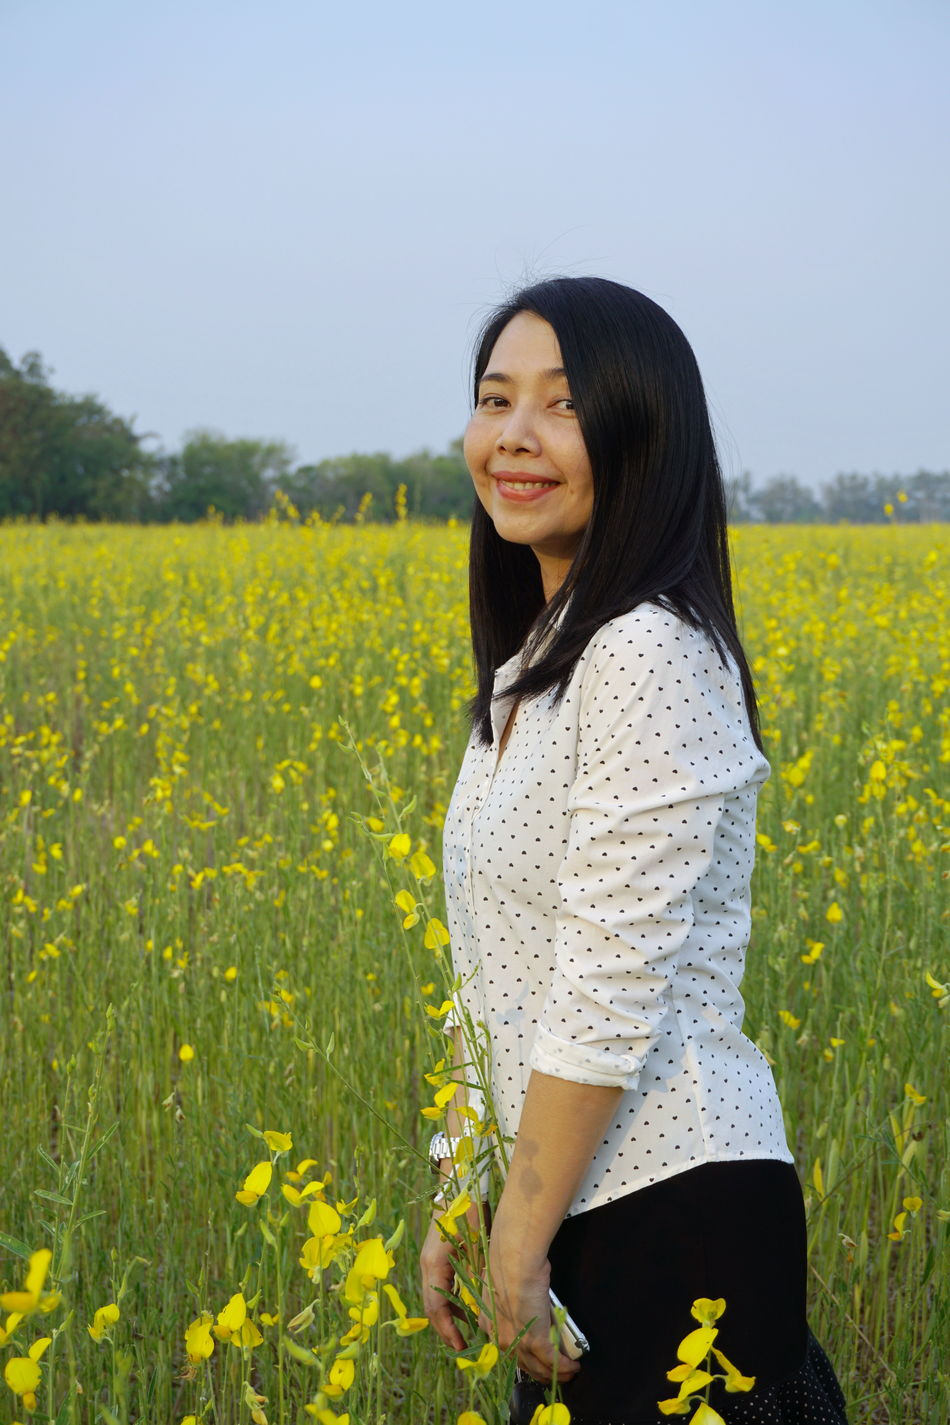 Beautiful Woman Beauty In Nature Happiness Lifestyles Looking At Camera Nature Portrait Rural Scene Smiling